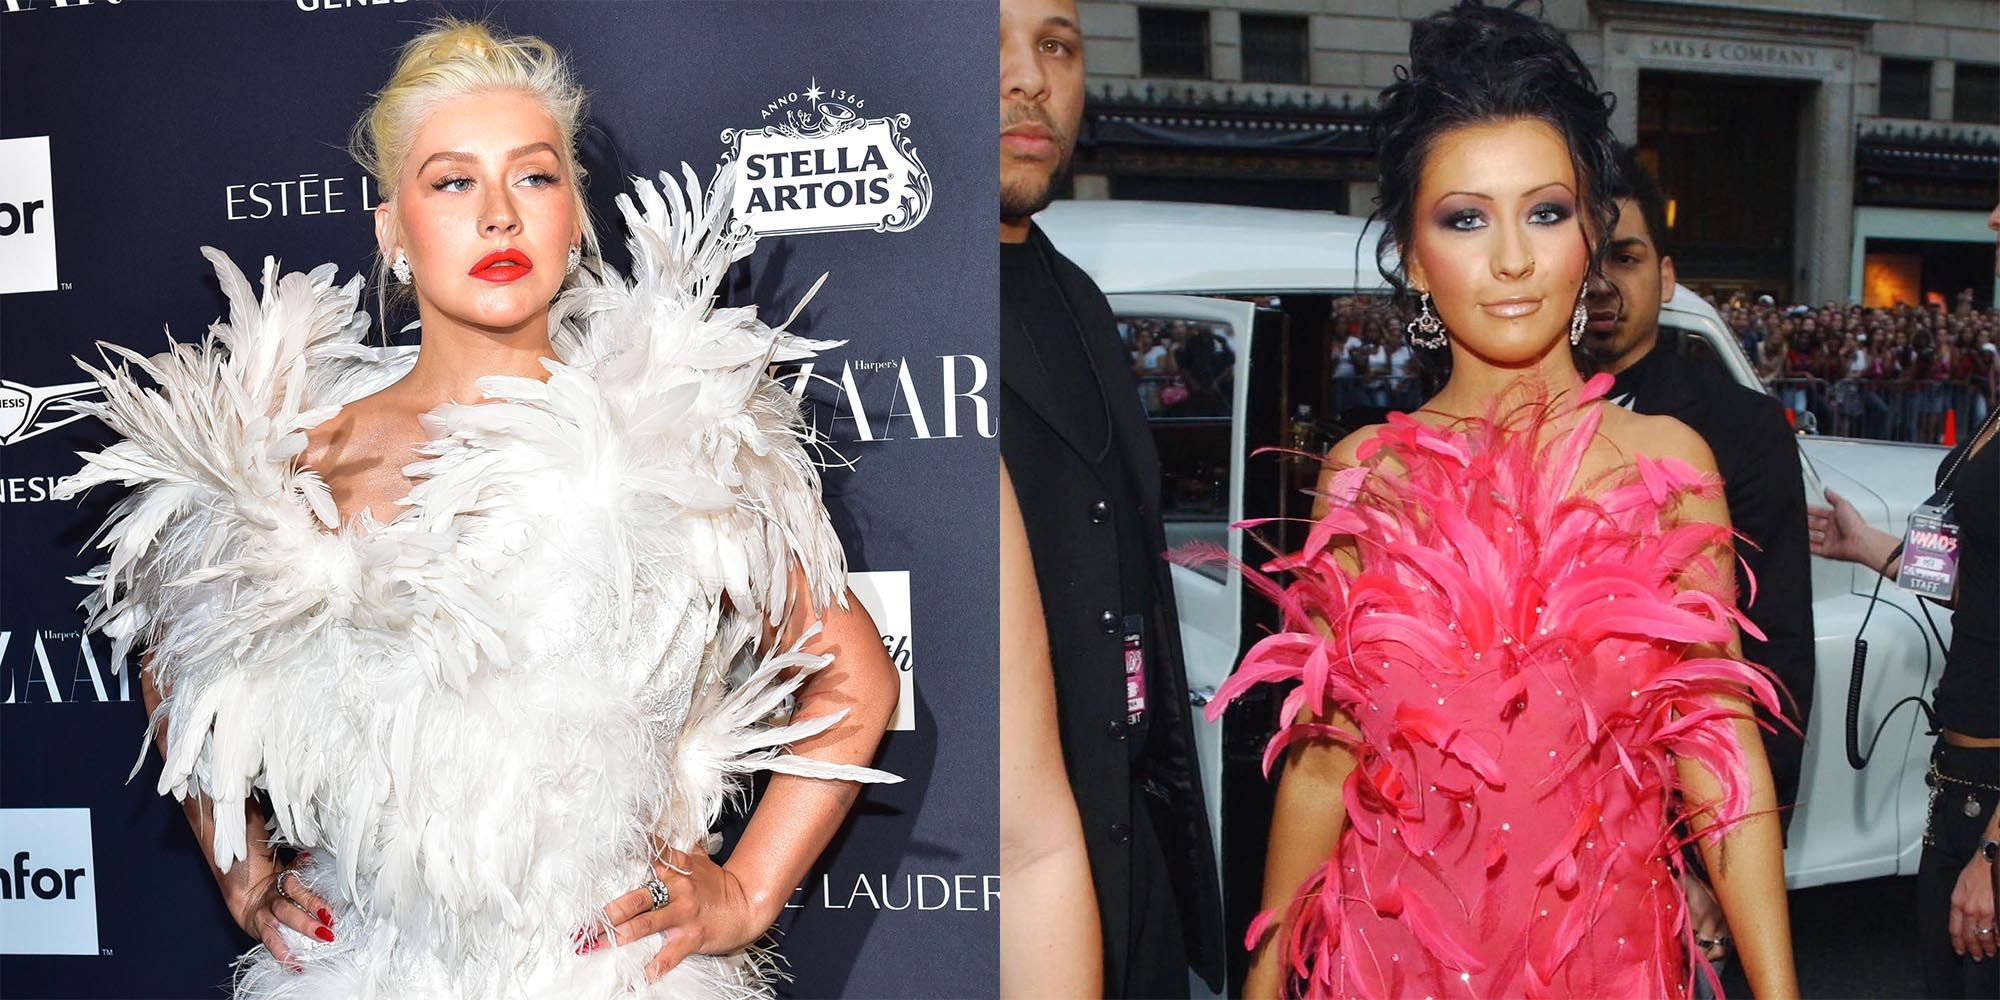 Christina Aguilera Recreated Her Iconic VMAs Feathered Look at the BAZAAR ICONS Party